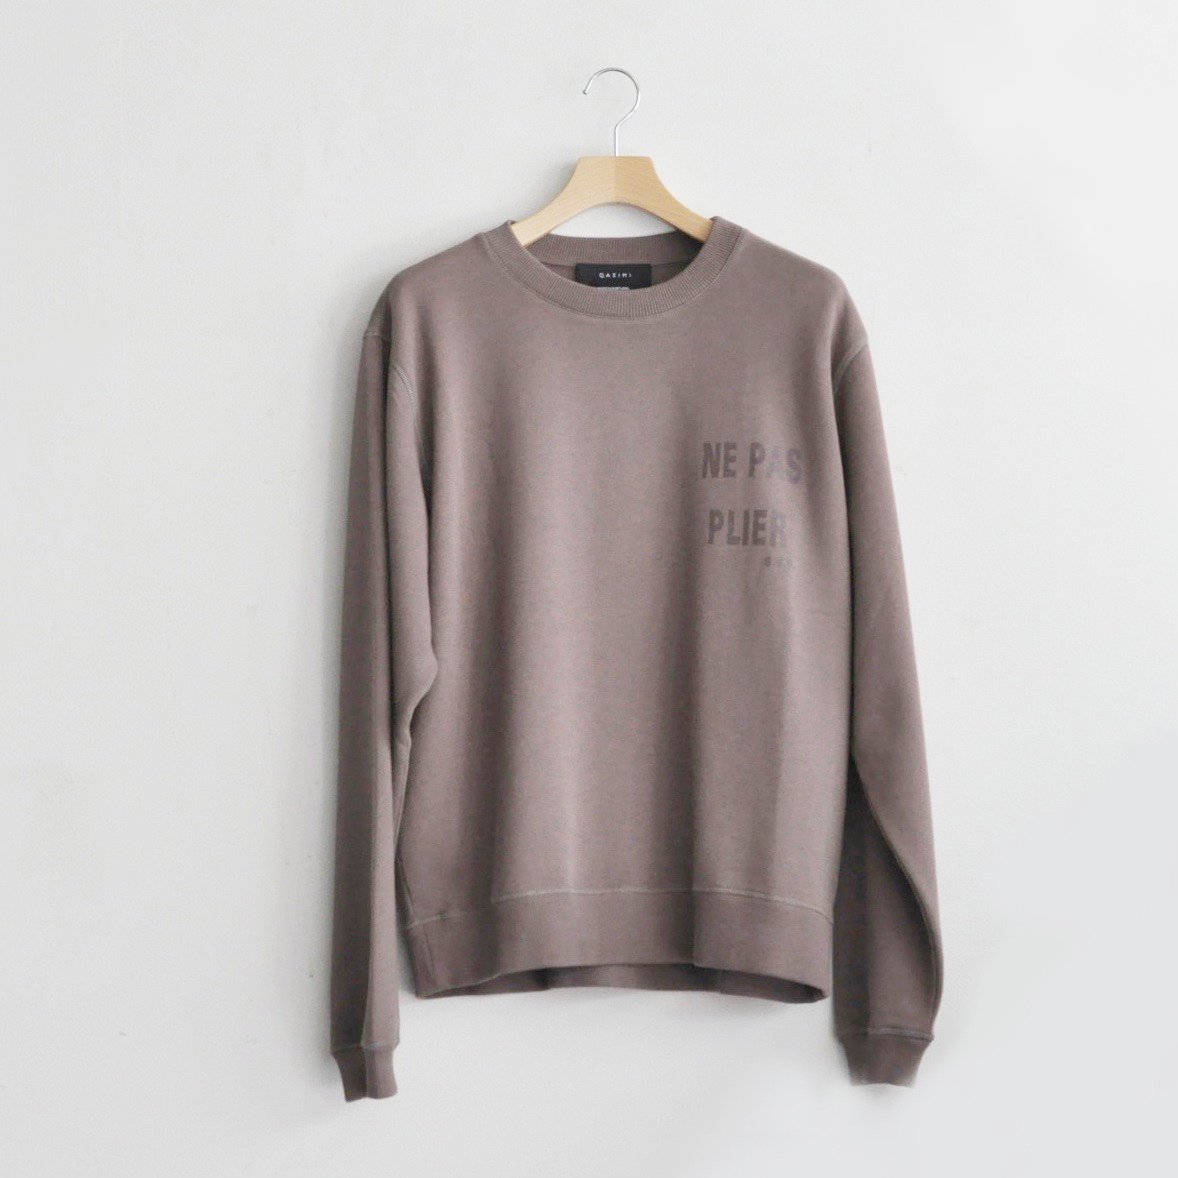 SWEAT SHIRT NE PAS PLIER [DEEP TAUPE]